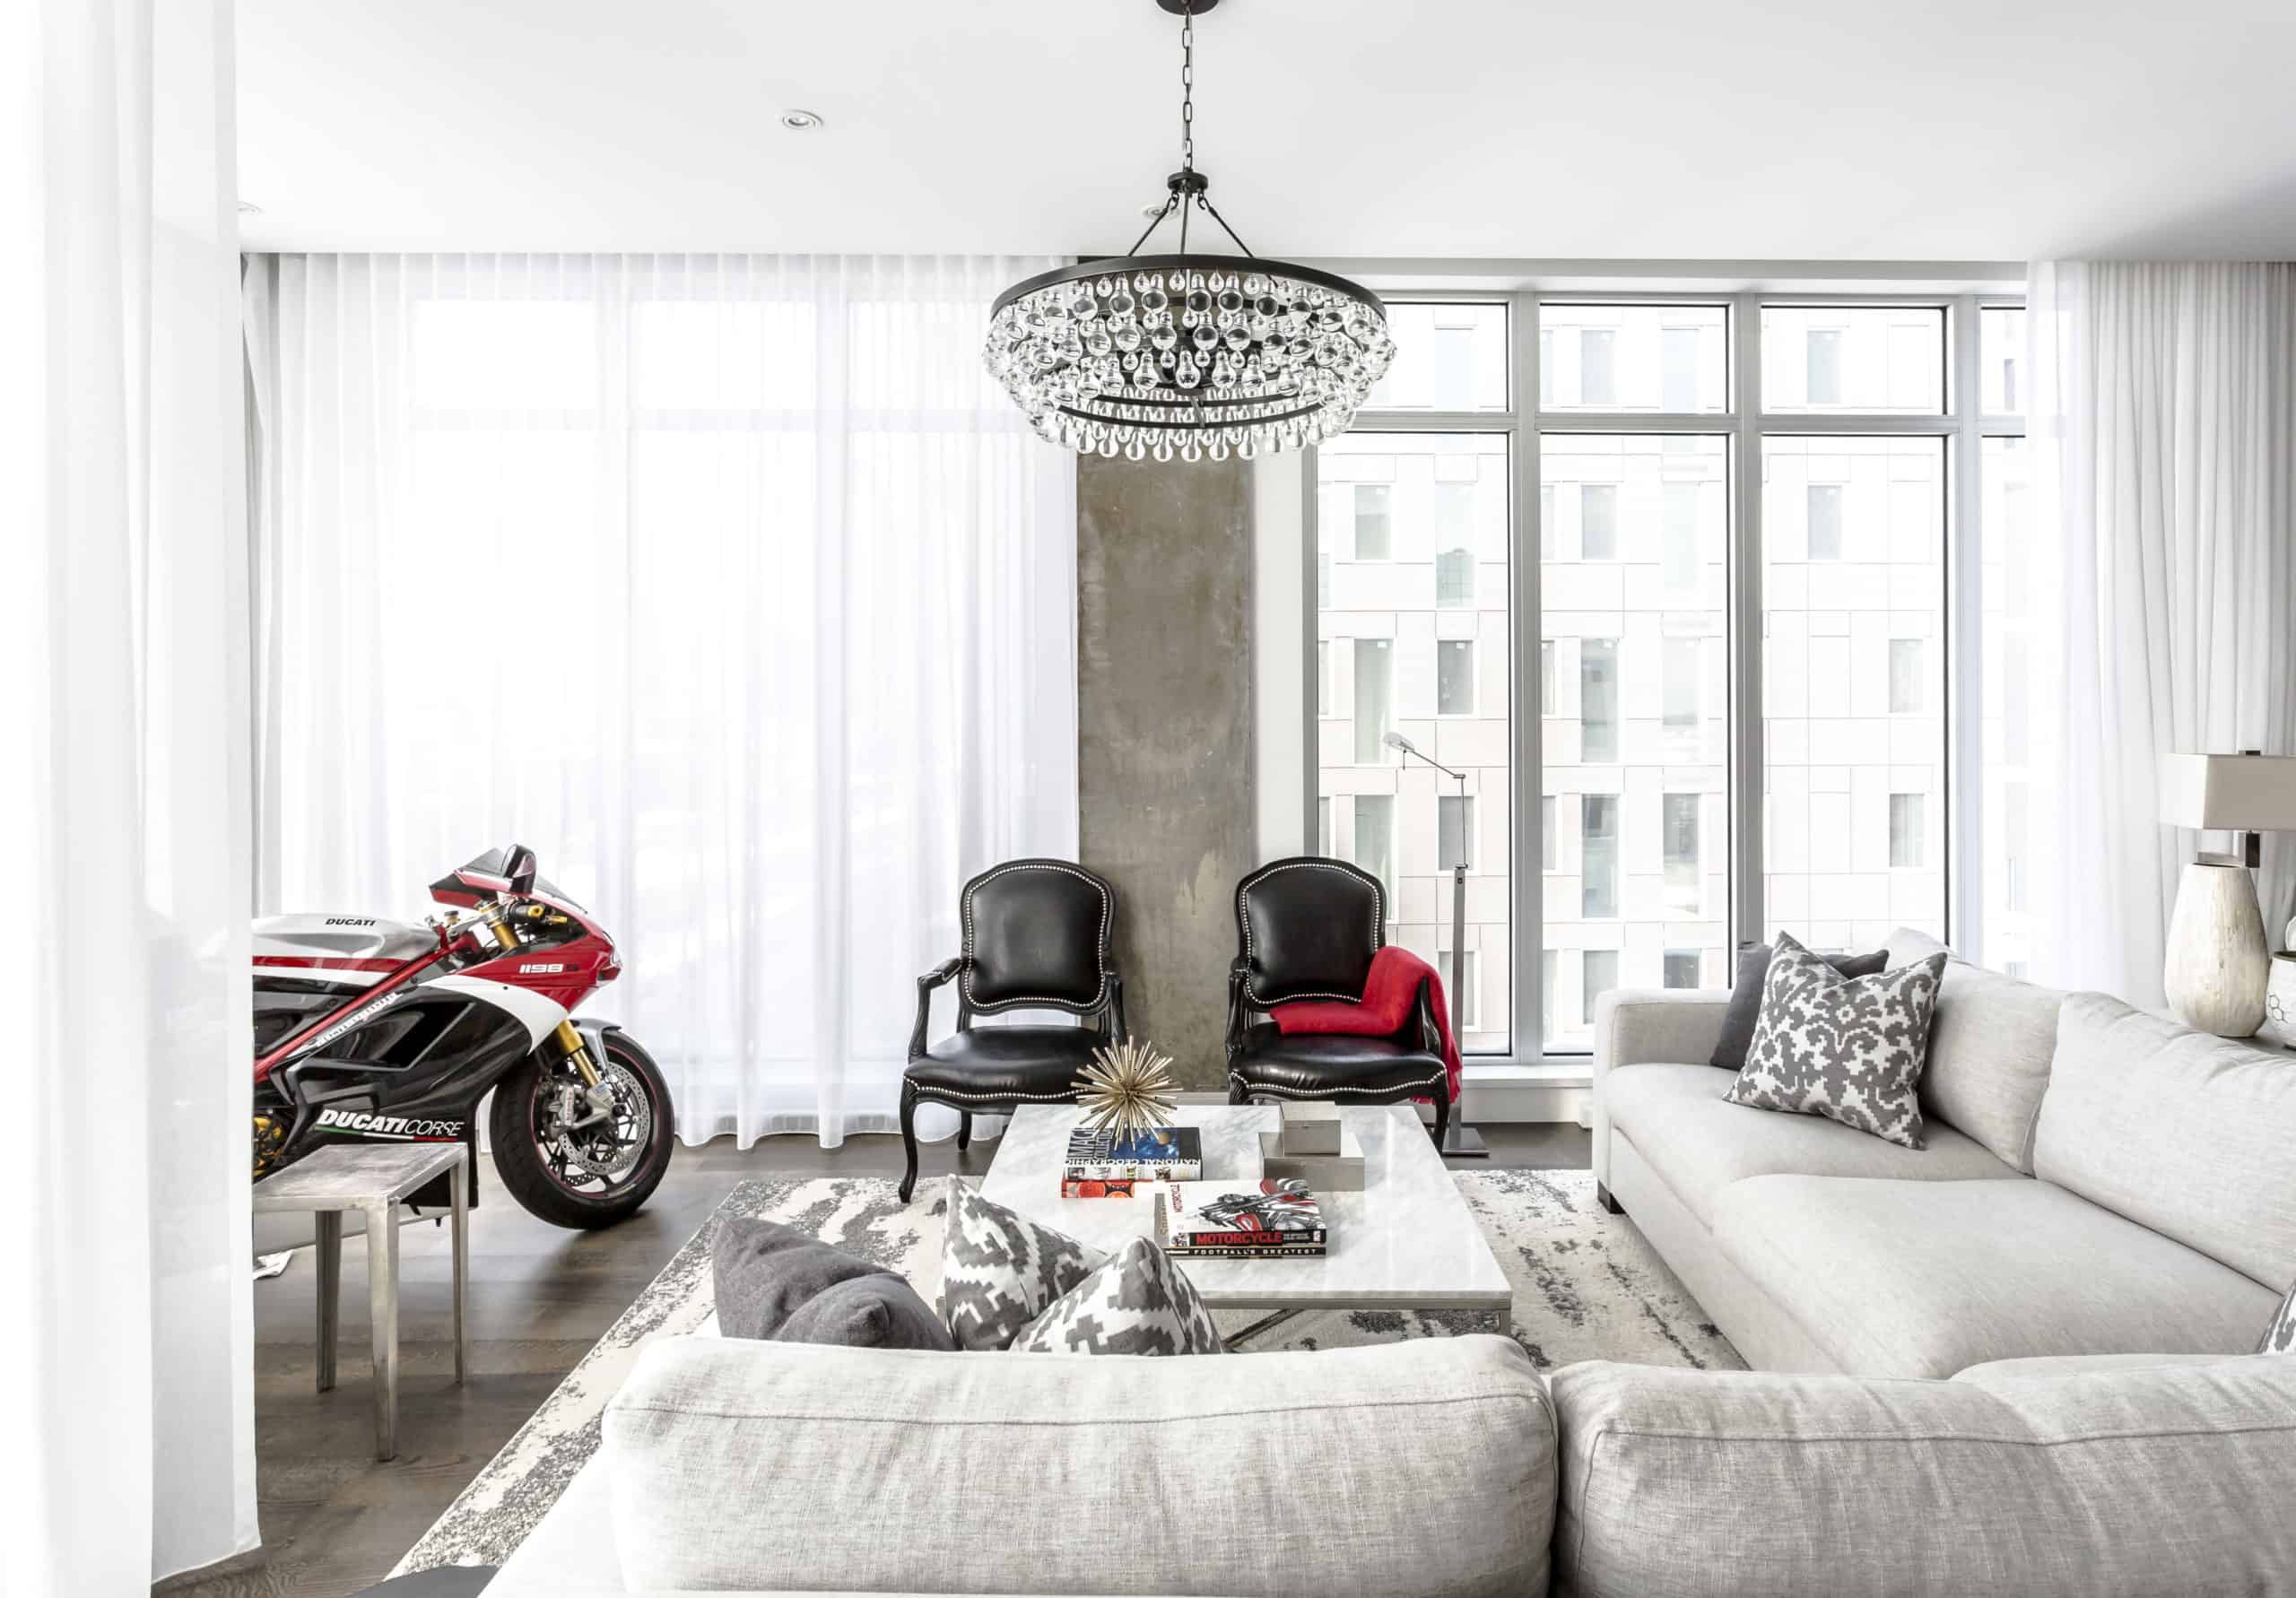 Modern living room with a motorcycle inside it